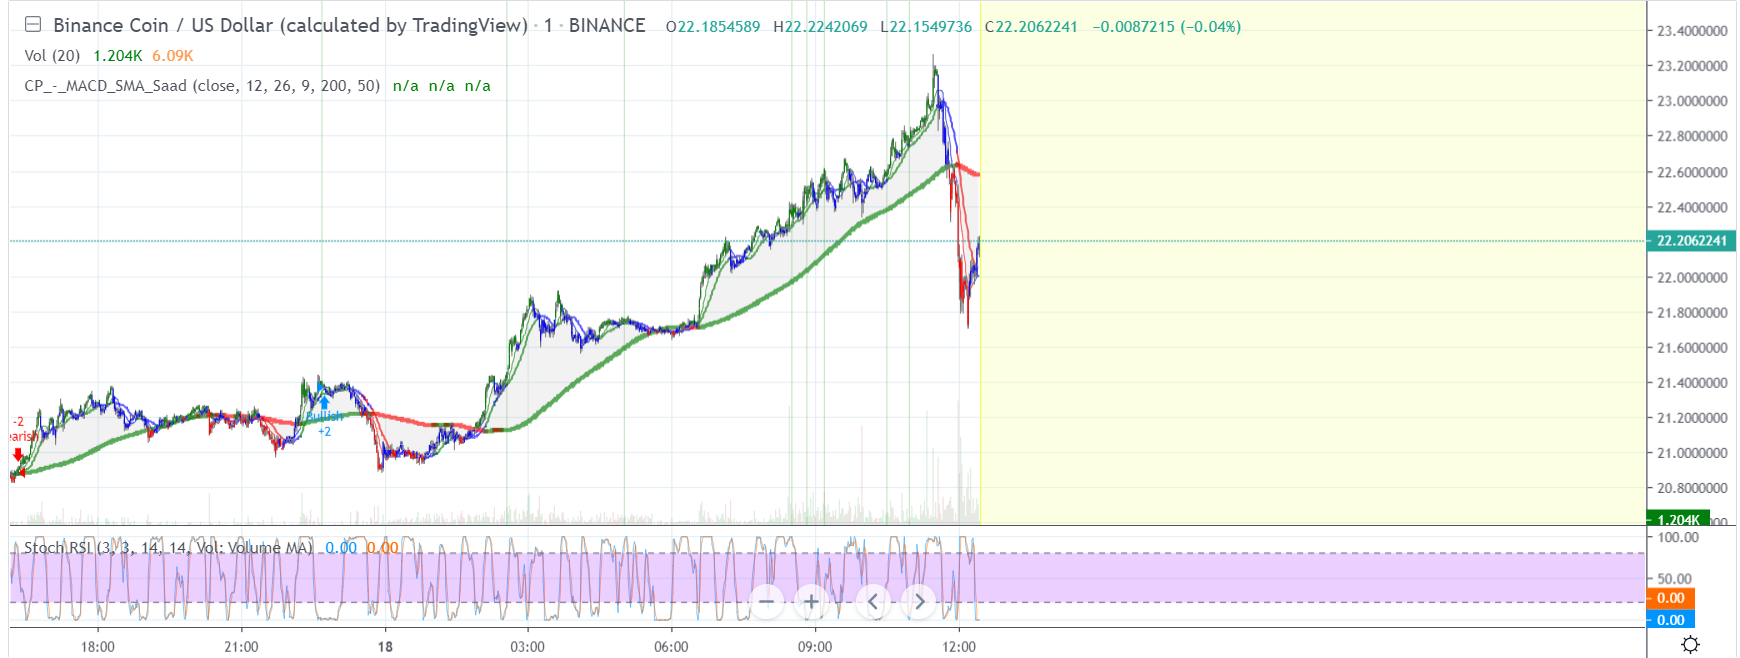 Binance Coin price analysis: It all rests on the $16 support mark 2